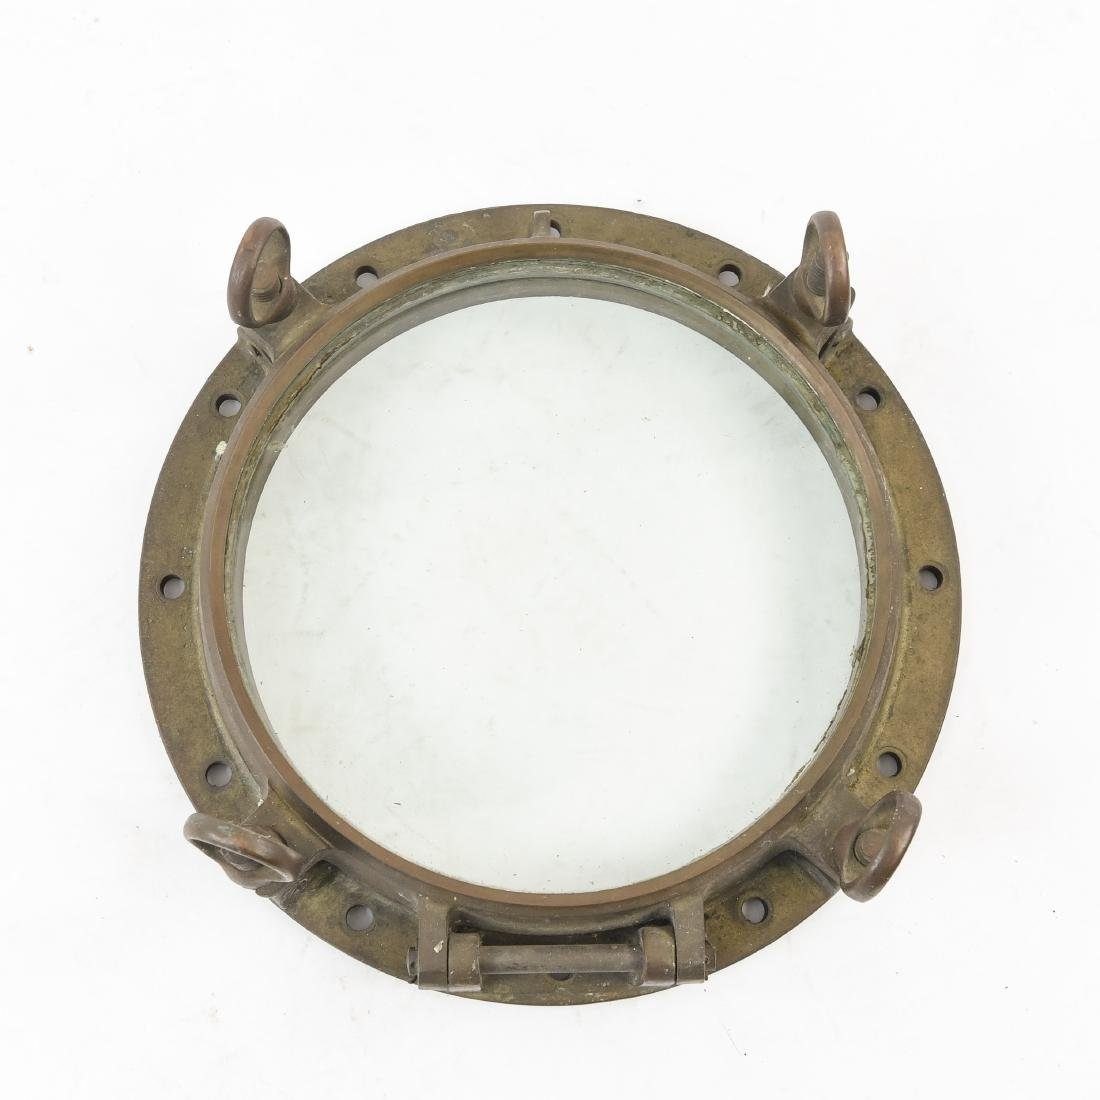 NAUTICAL BRONZE PORT HOLE WINDOW